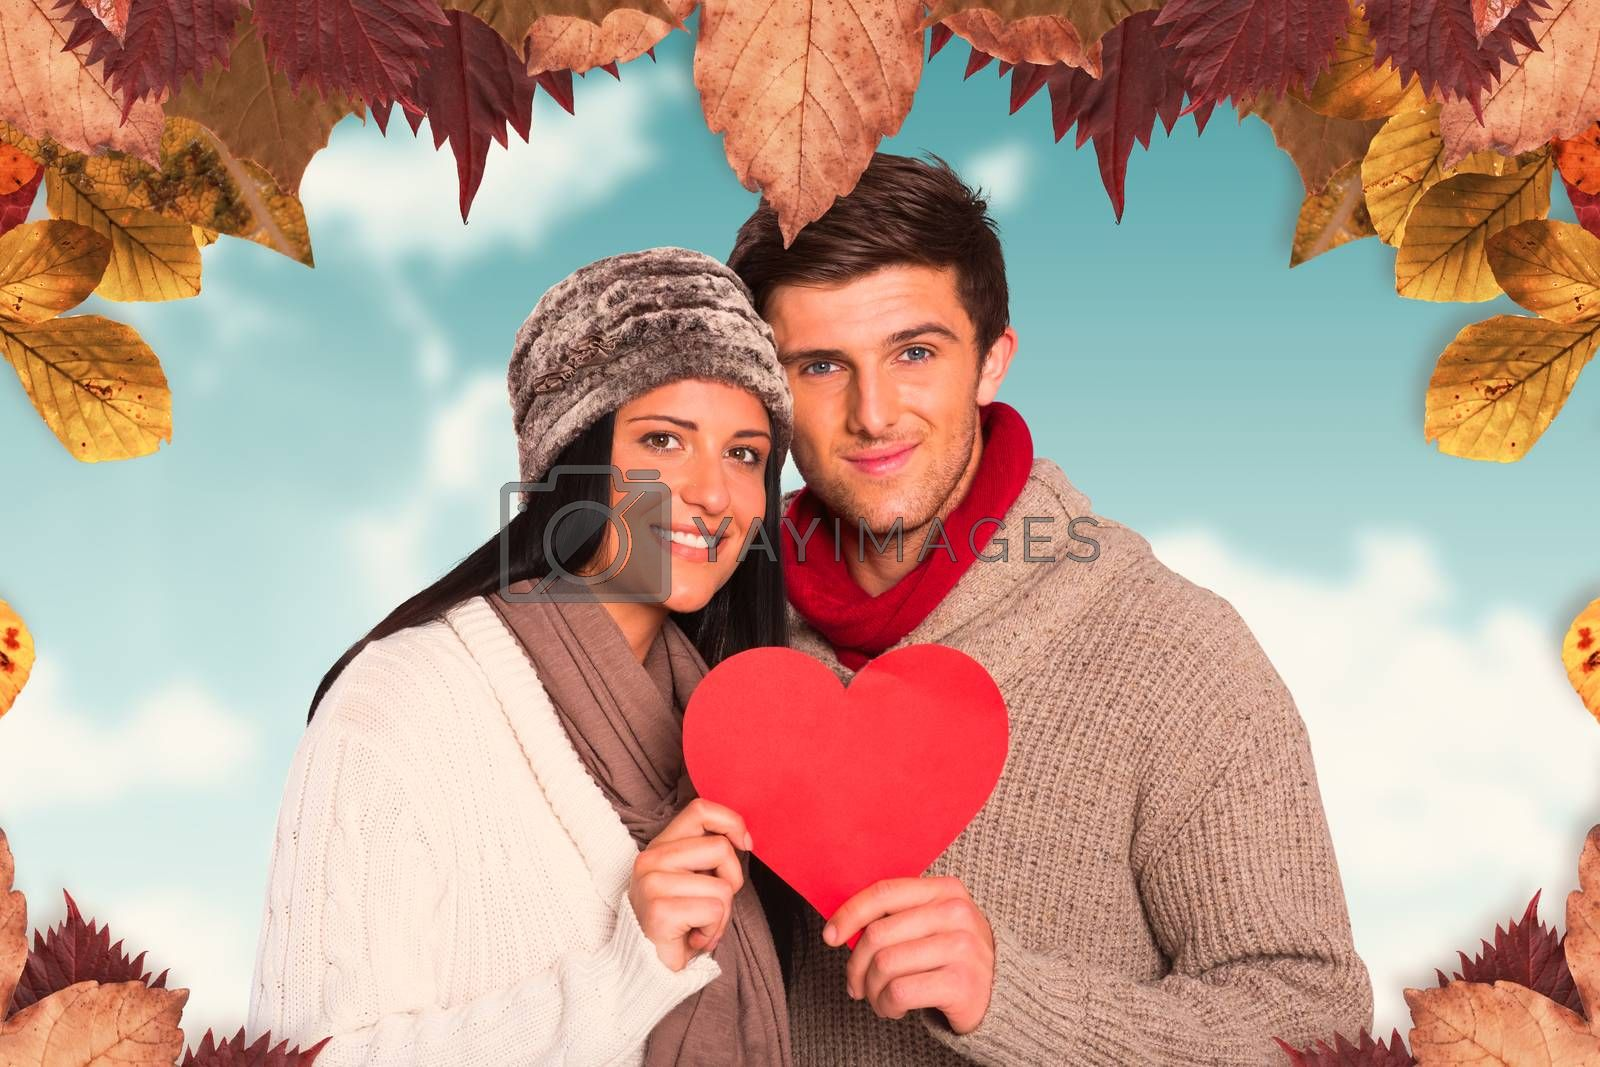 Young couple smiling holding red heart against blue sky